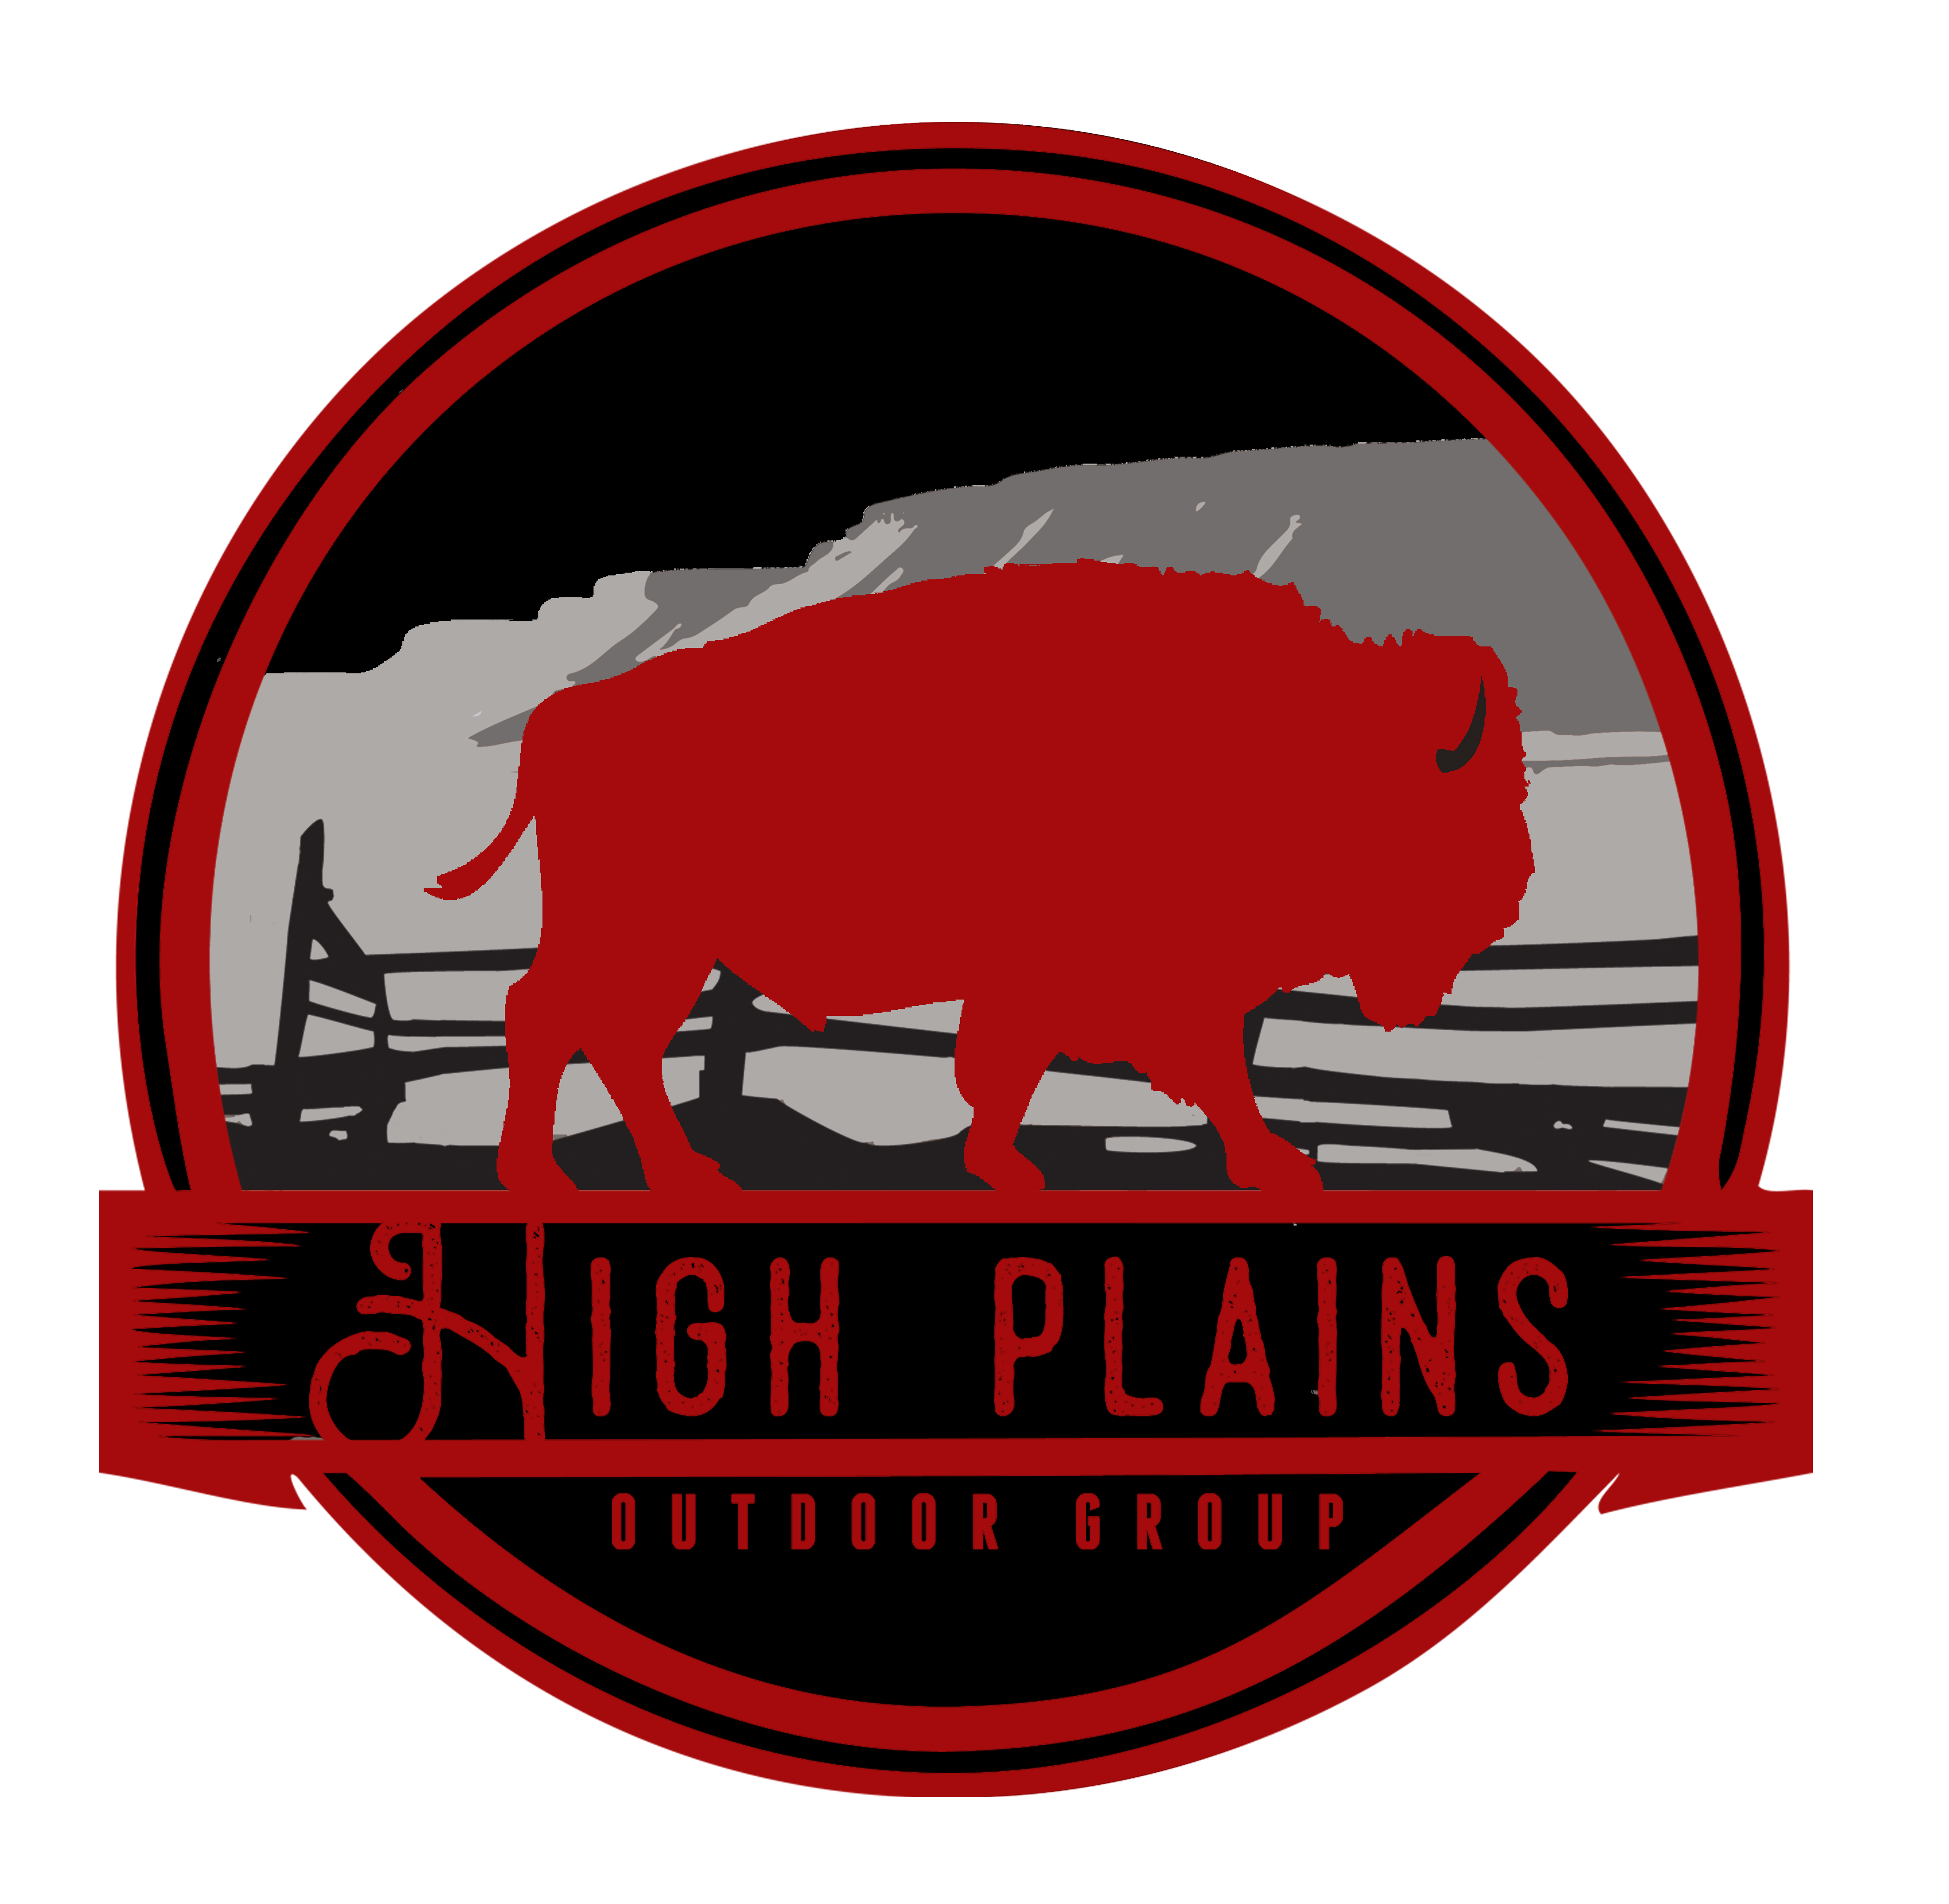 High Plains Outdoor Group